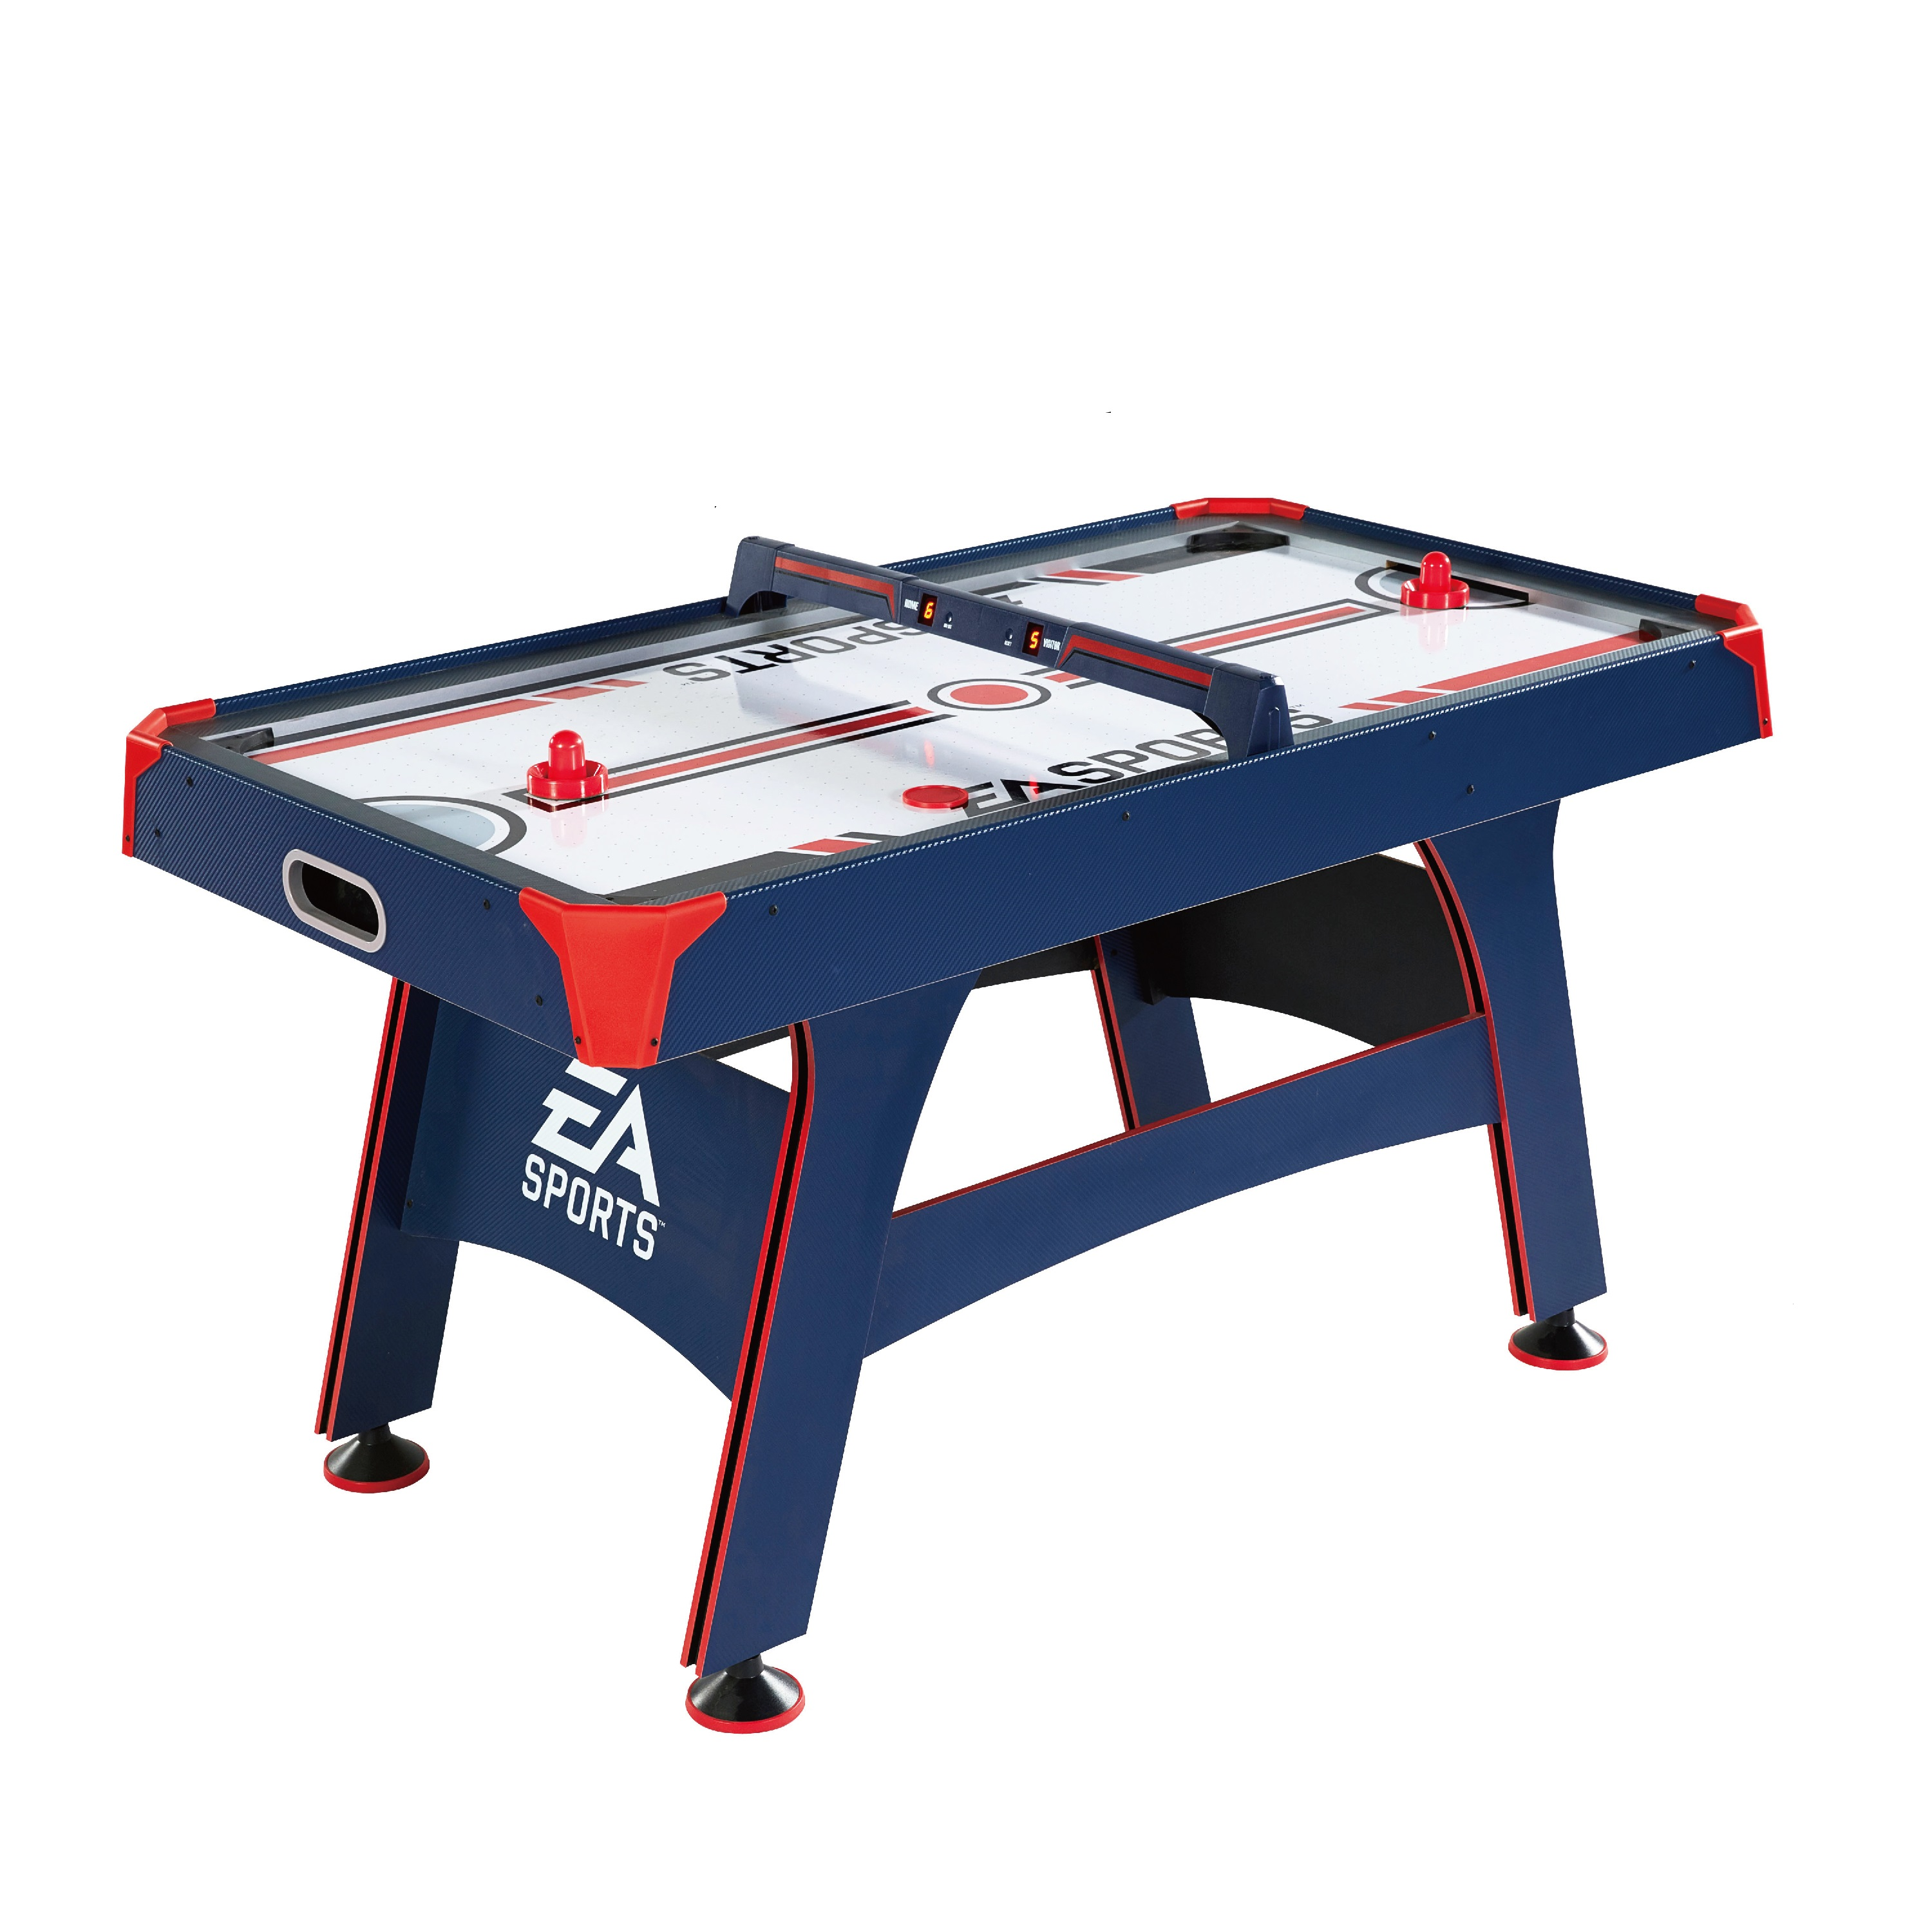 Ordinaire EA Sports 60 Inch Air Powered Hockey Table With Overhead Electronic Scorer,  Blue/Red